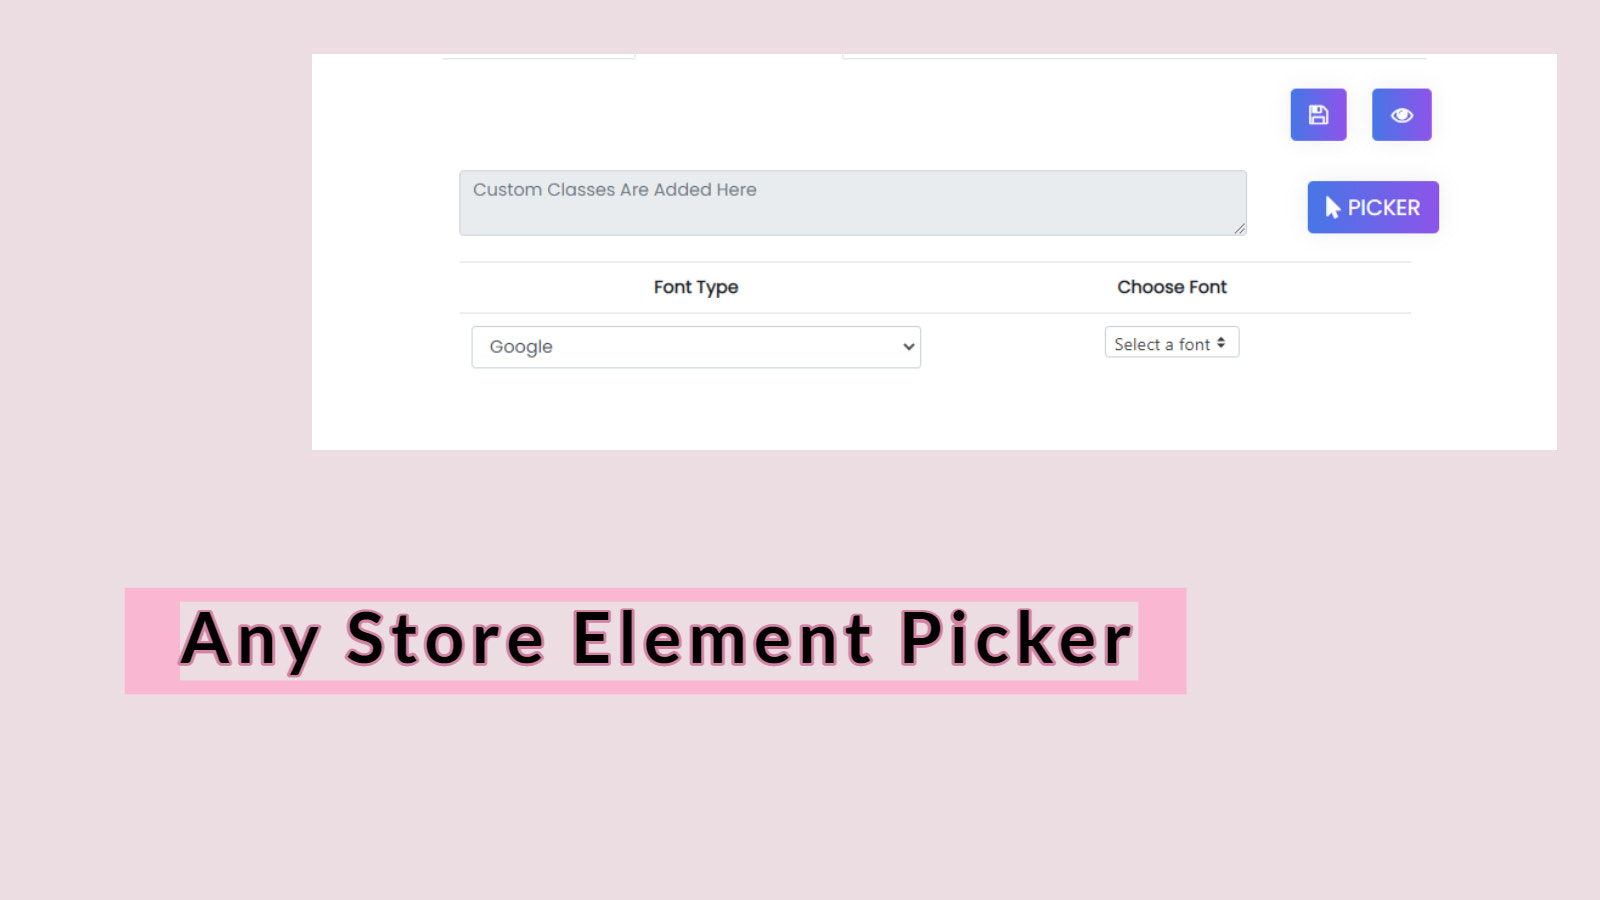 Add Custom Fonts to Shopify Store Using Element Picker